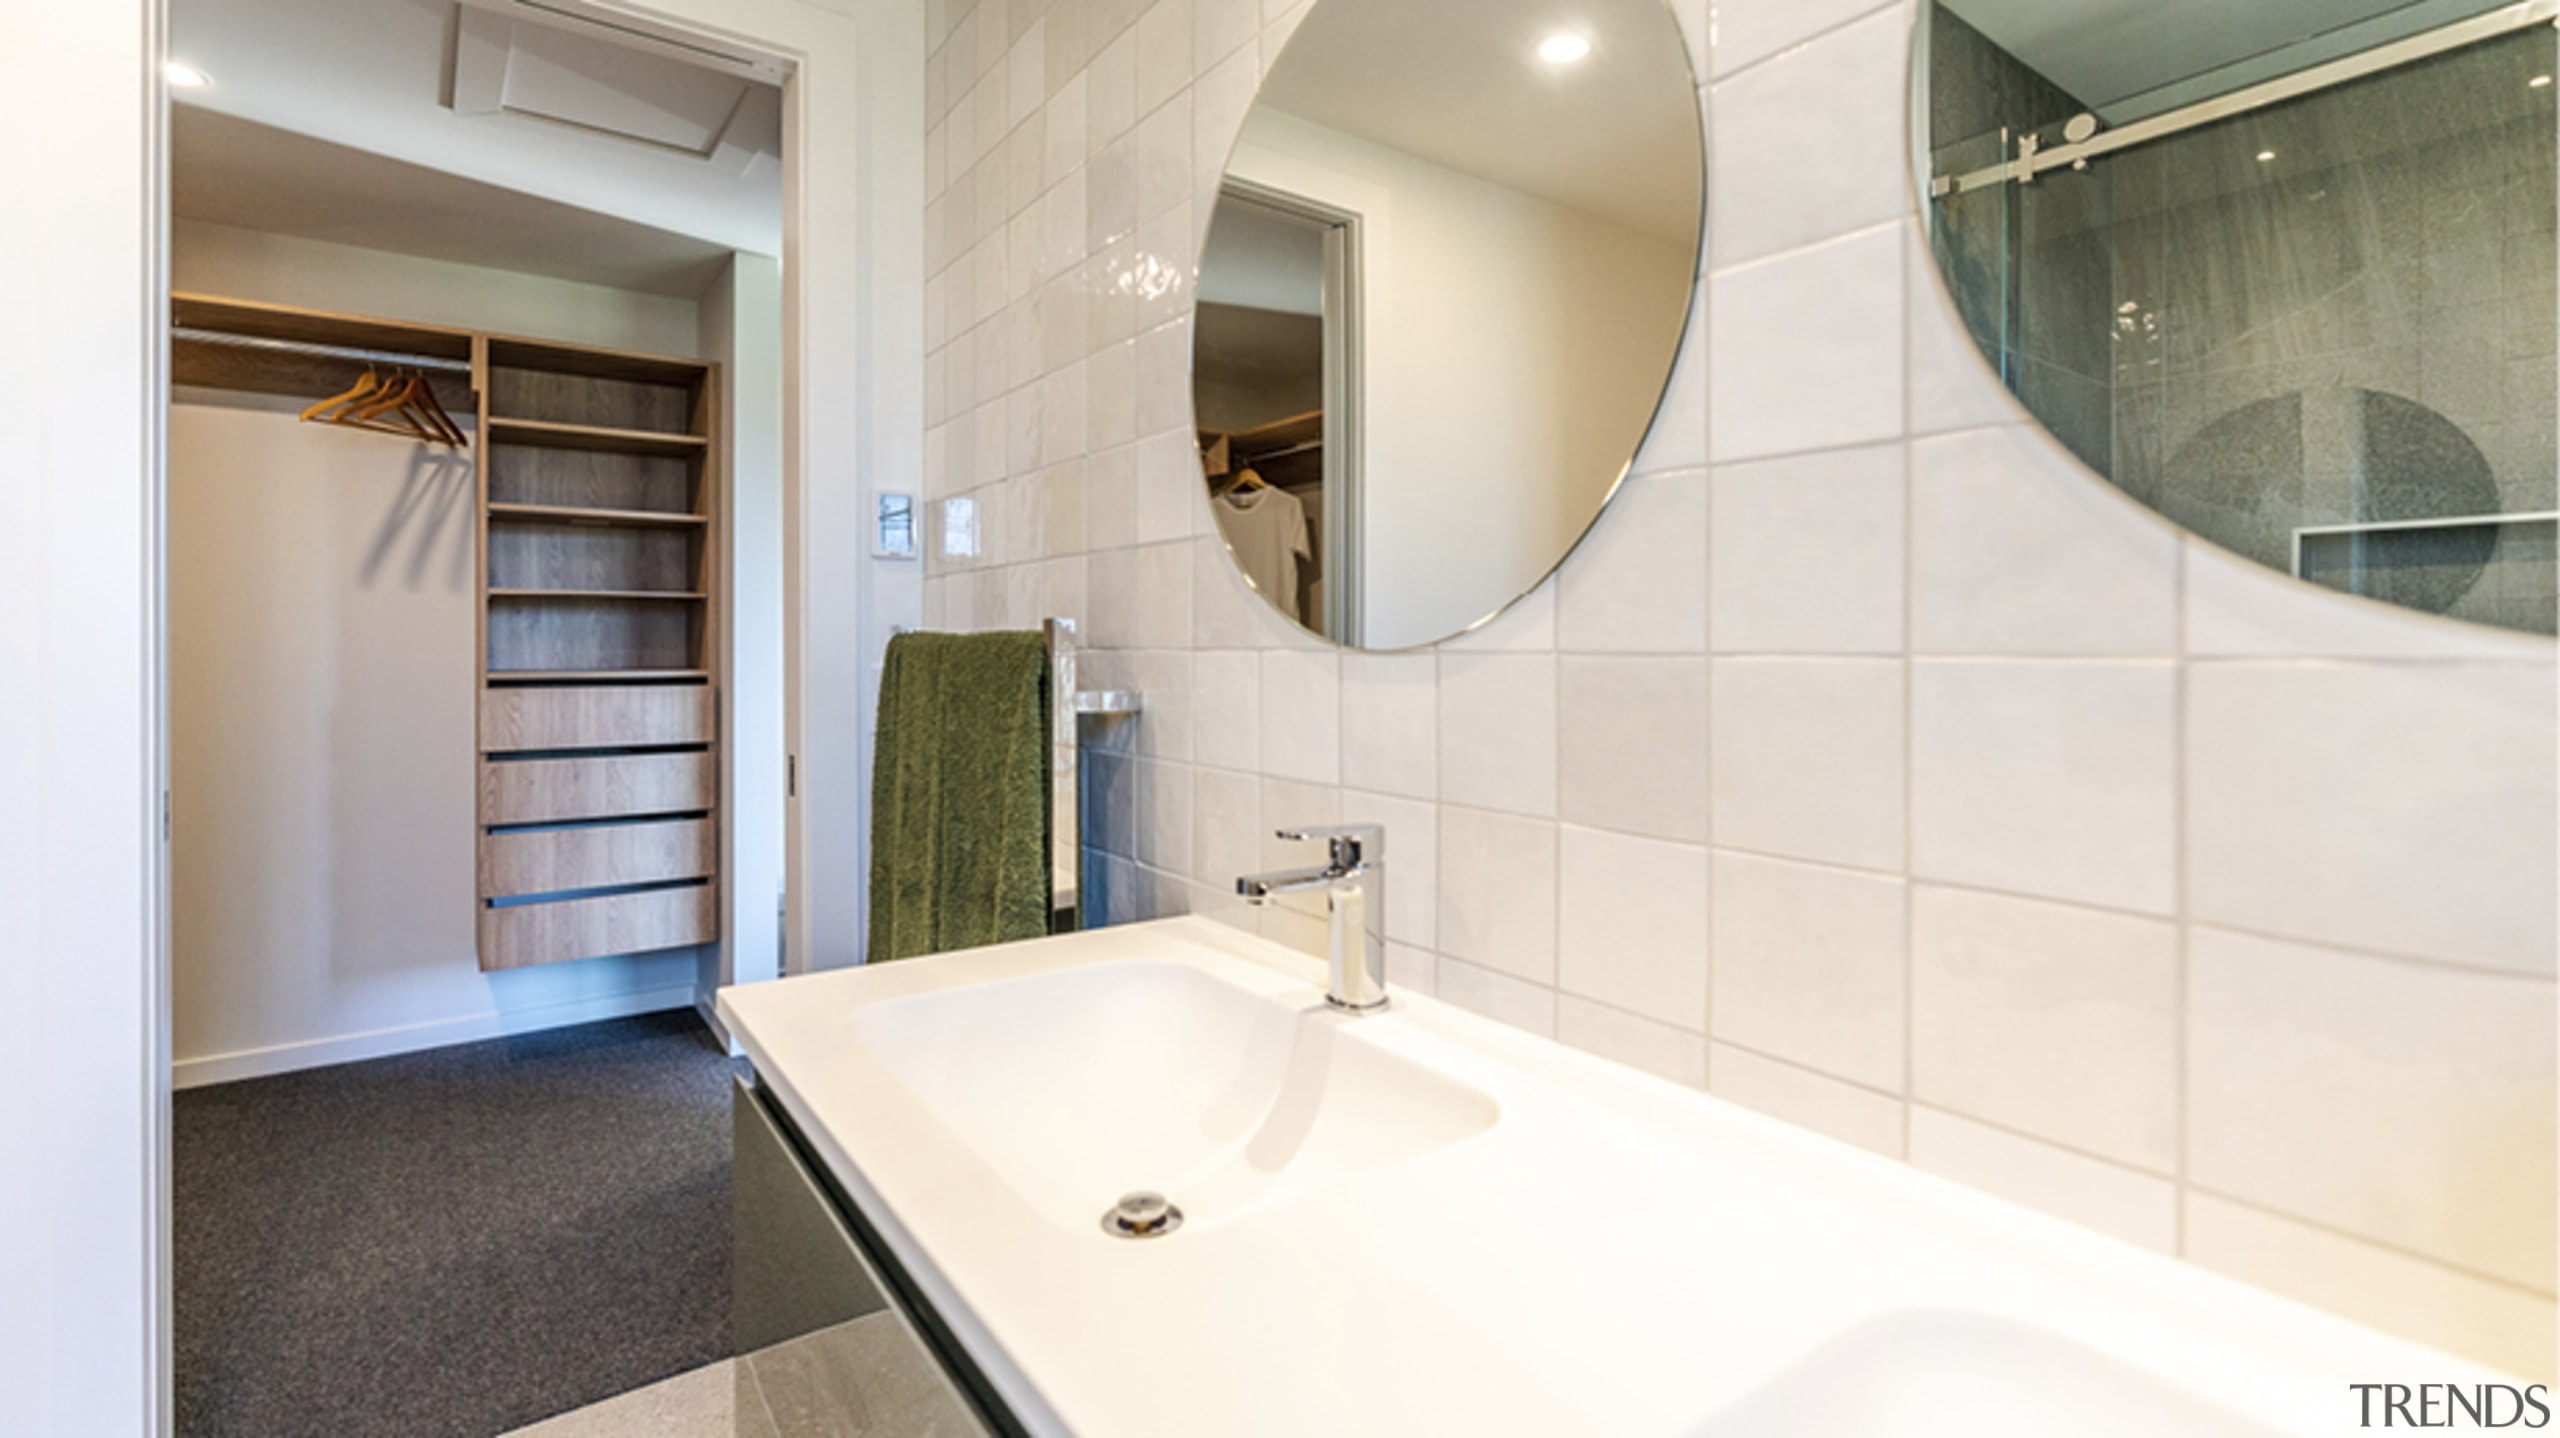 A generous walk-in dressing room complements the spa-like